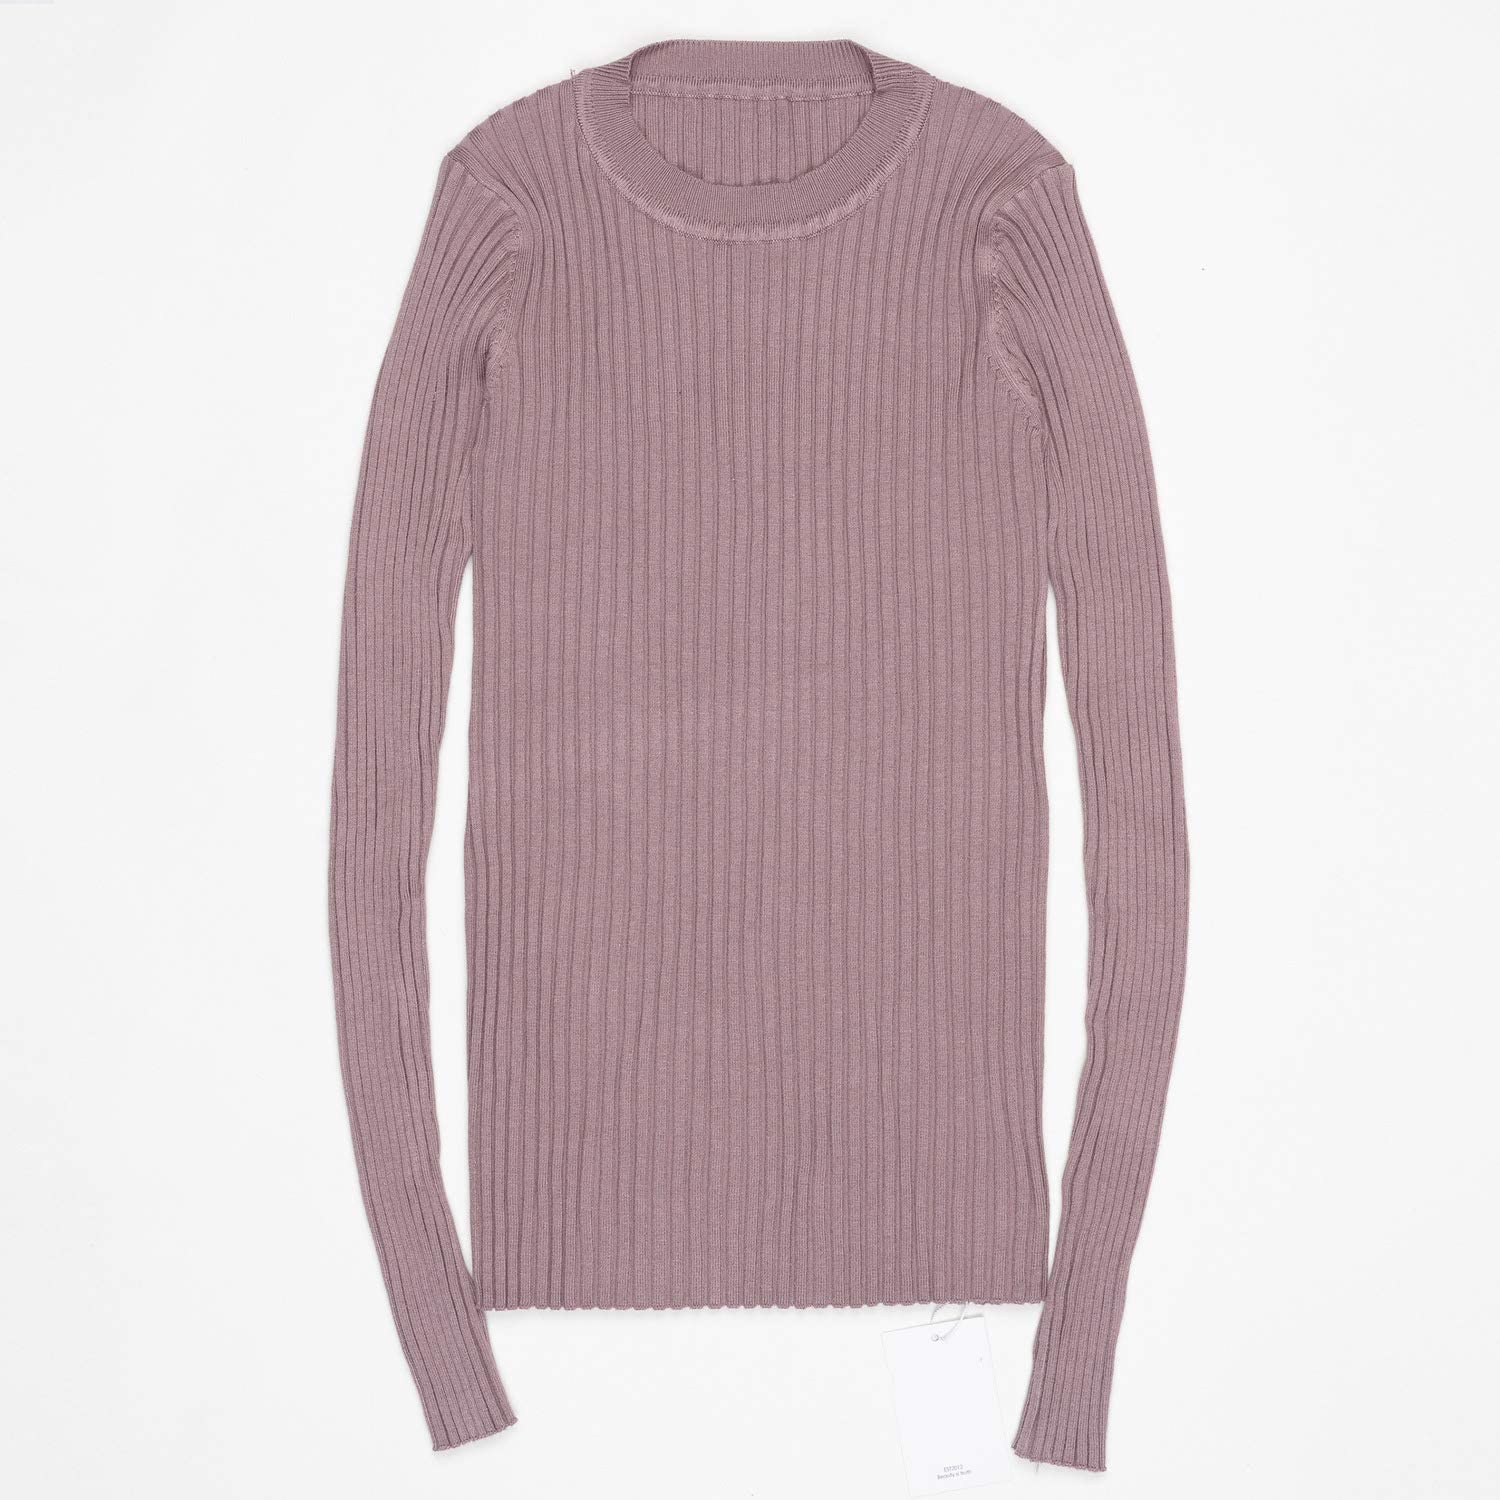 double-june Women Sweater Basic Cotton Tops Solid Essential Long Sleeve Thumb Hole